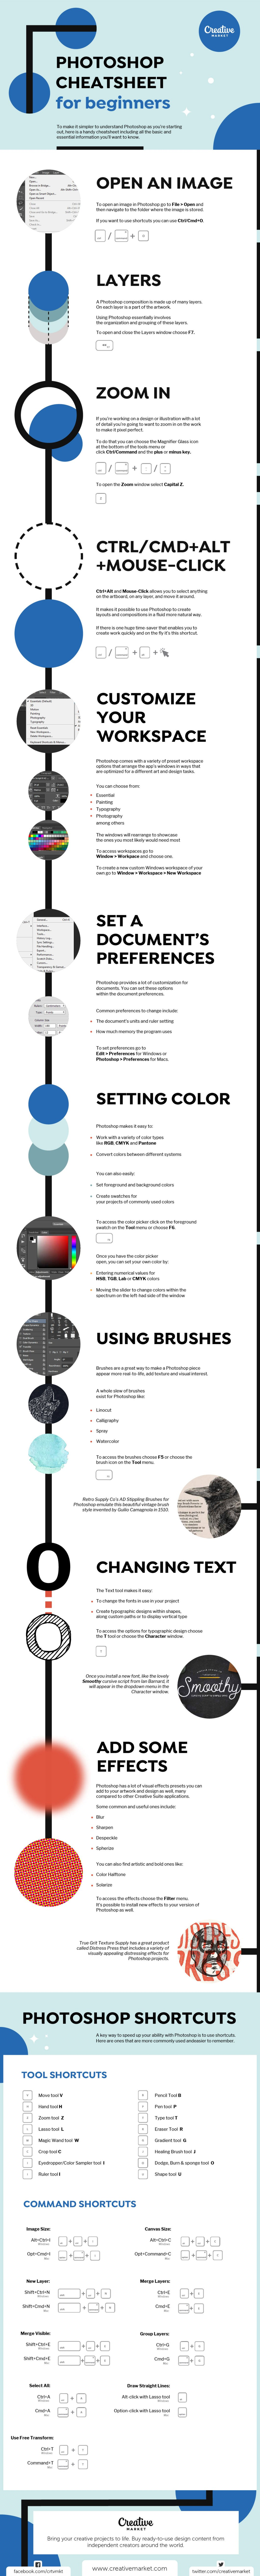 No More Hiccups: The Ultimate Photoshop Cheat-Sheet - Infographic